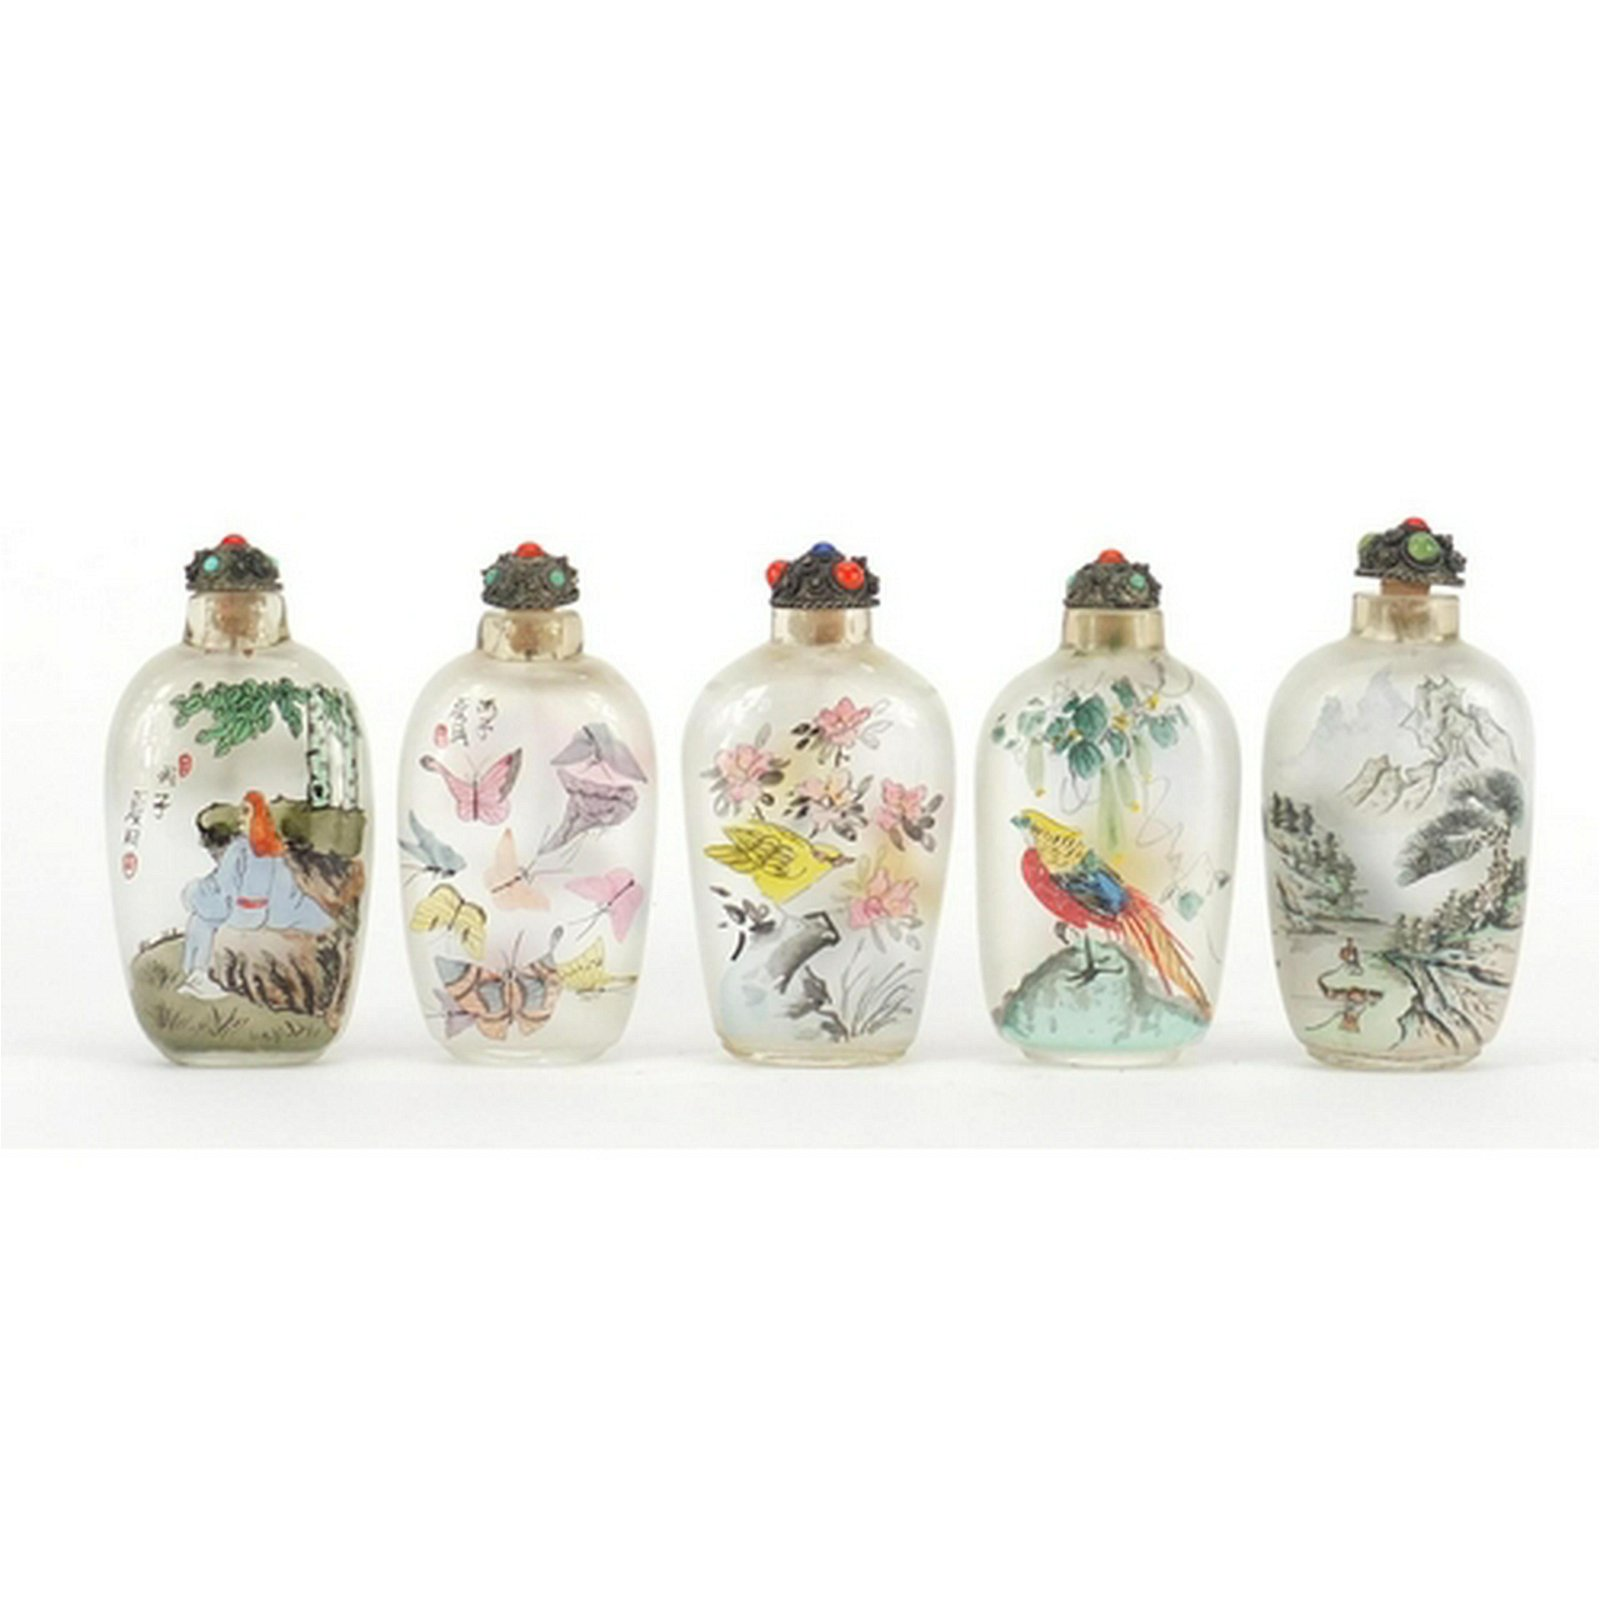 Five Chinese glass snuff bottles with stoppers, each